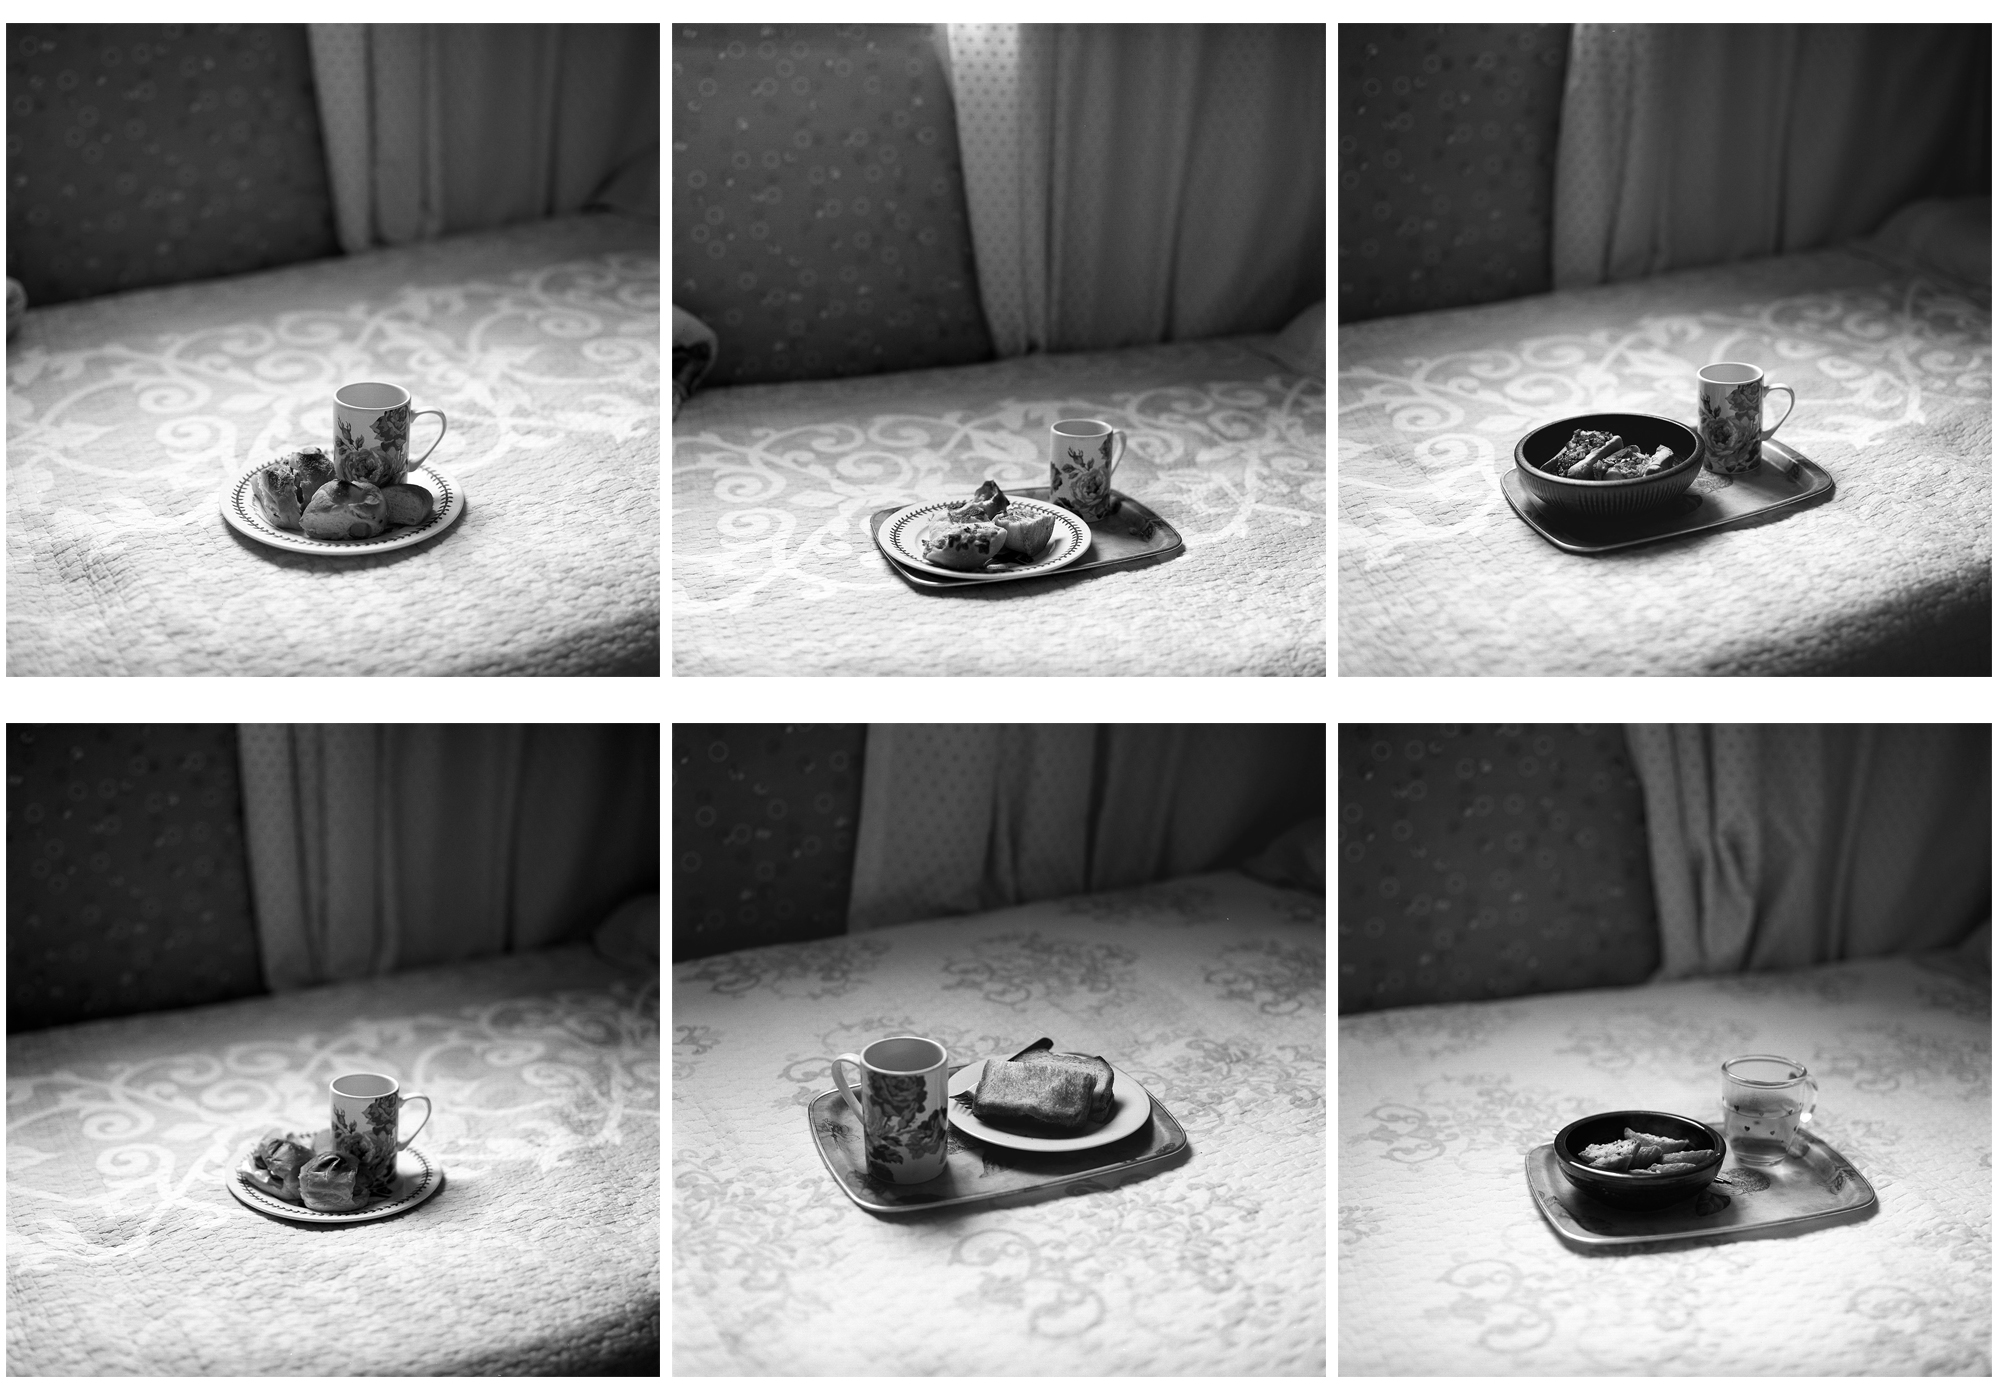 Daily Journal - Breakfast (기획, 촬영) *120 Black and White Film